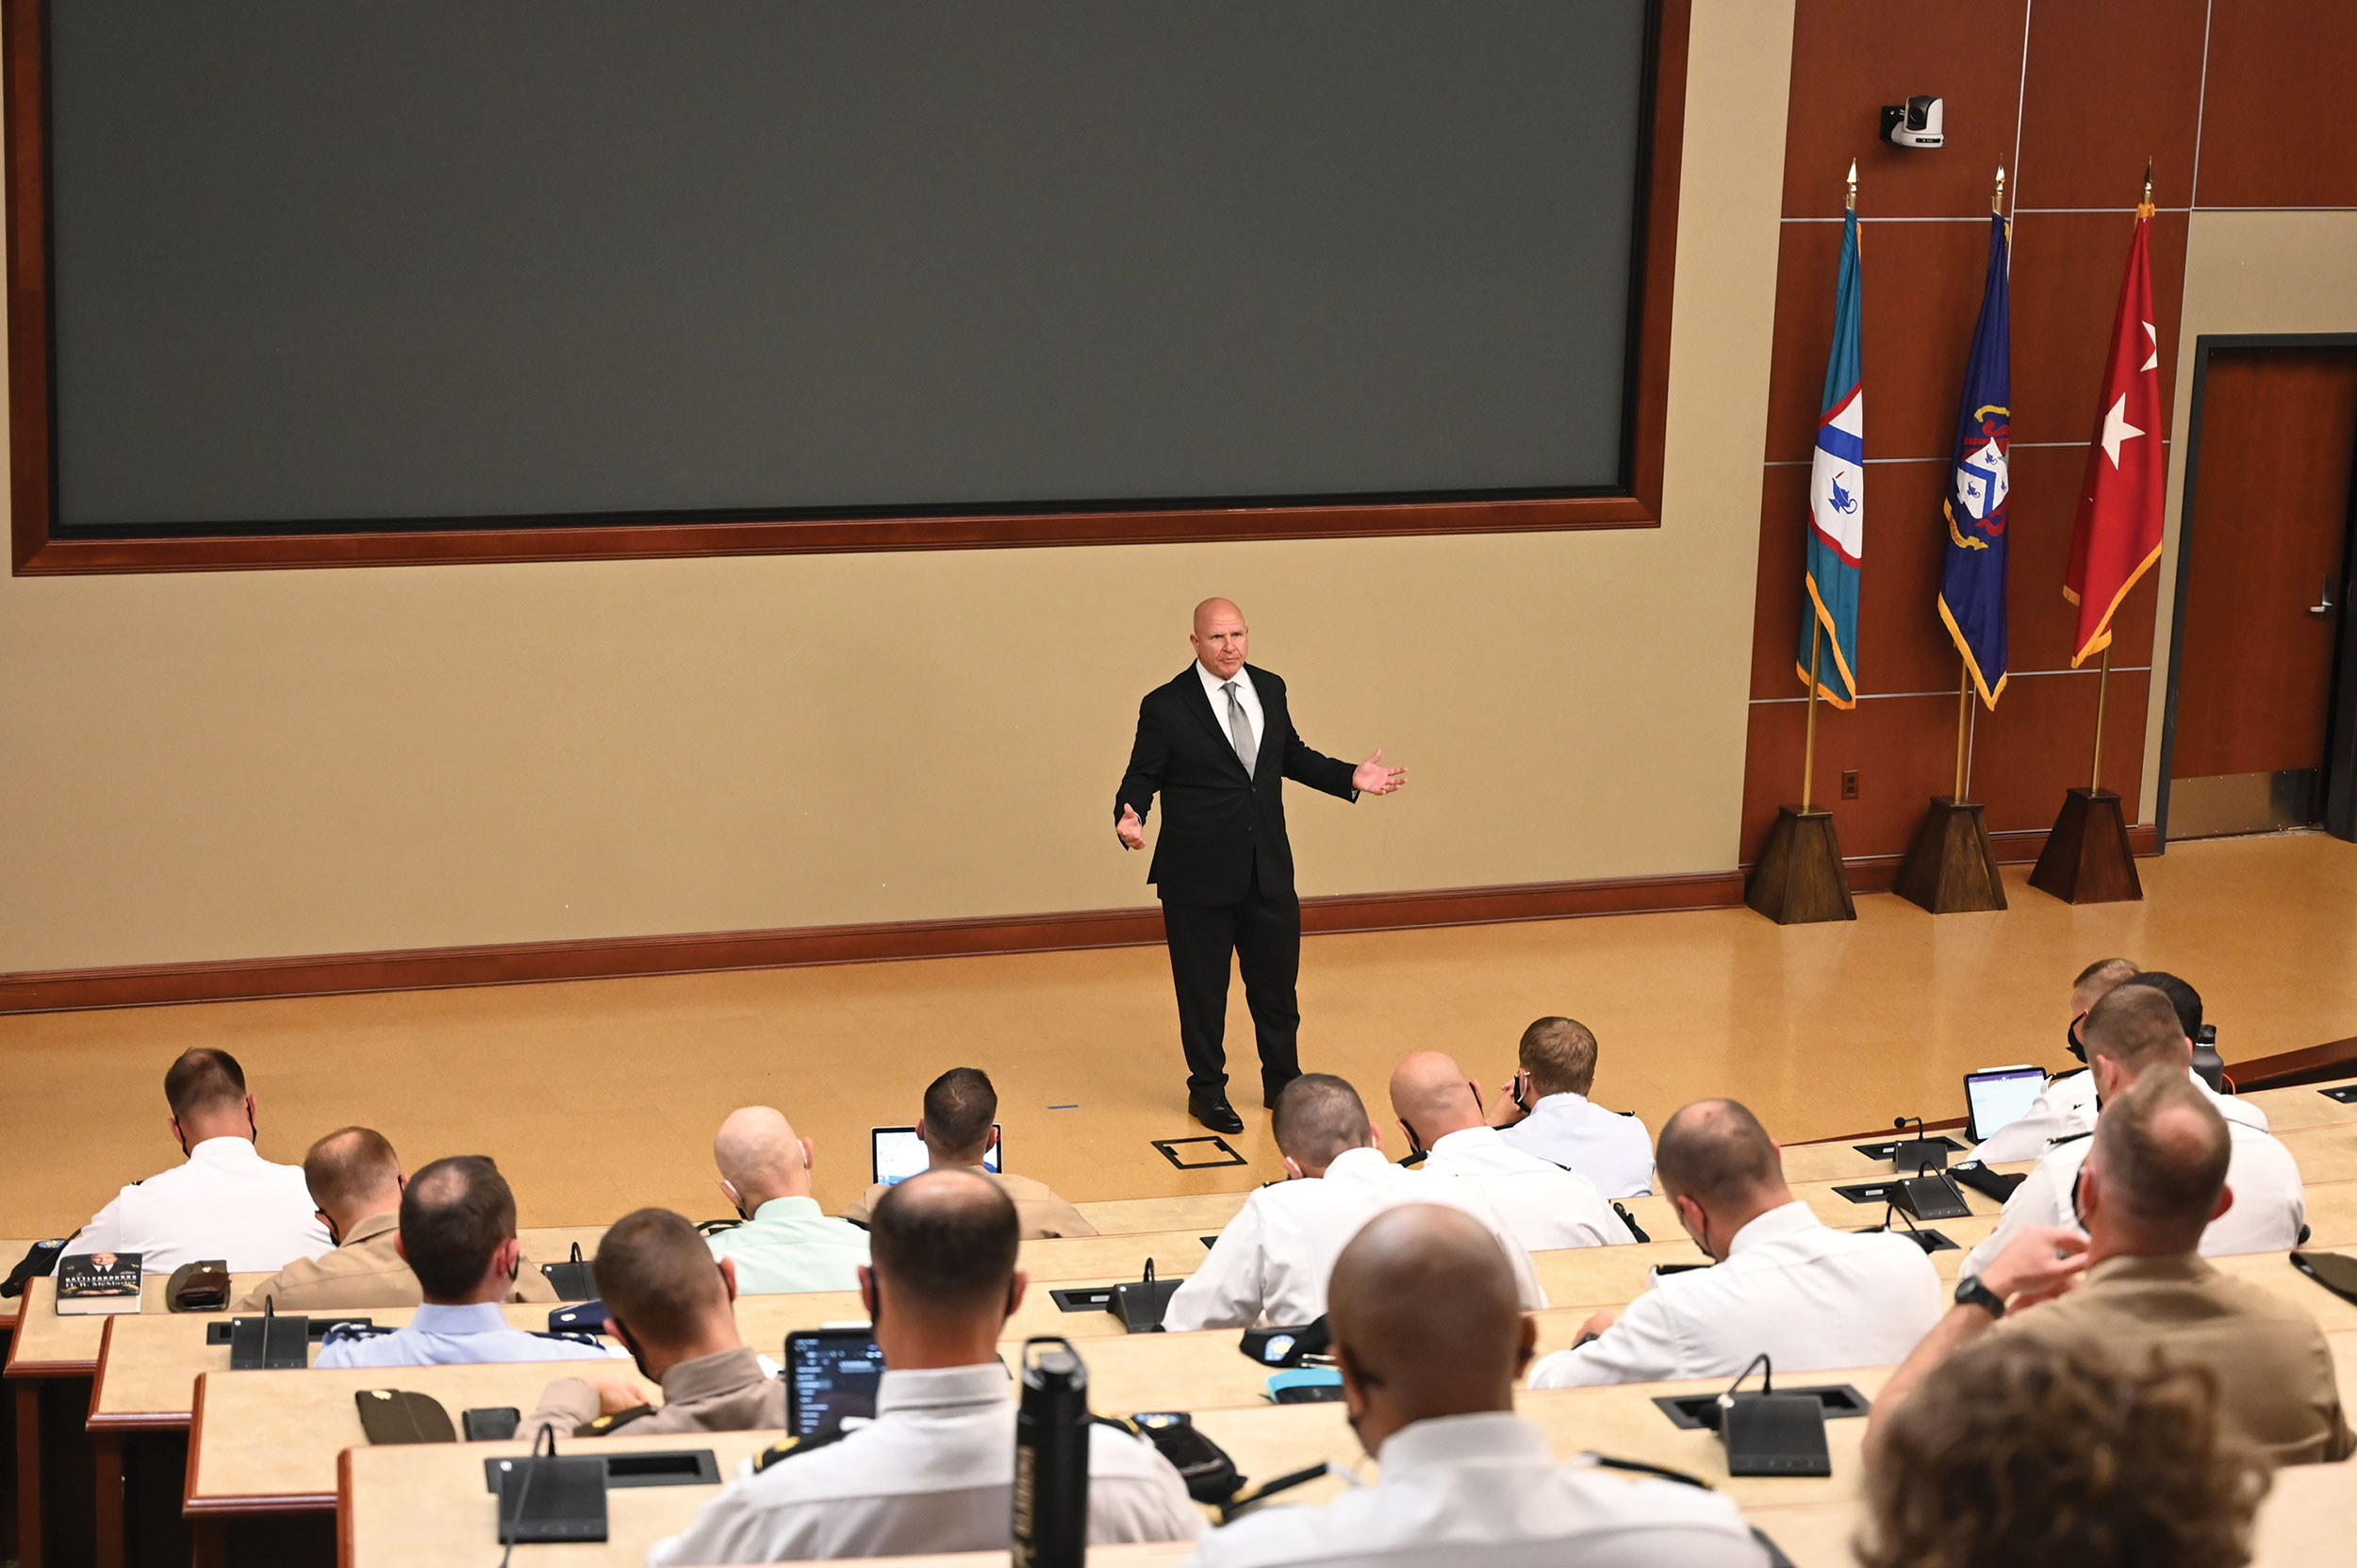 In his last stop during his visit to CGSC as the AY 22 Colin L. Powell Lecture Series lecturer, Lt. Gen. (Ret.) H.R. McMaster speaks with students in the SAMS Class of 2022 in Marshall Auditorium of the Lewis and Clark Center on Sept. 8, 2021.